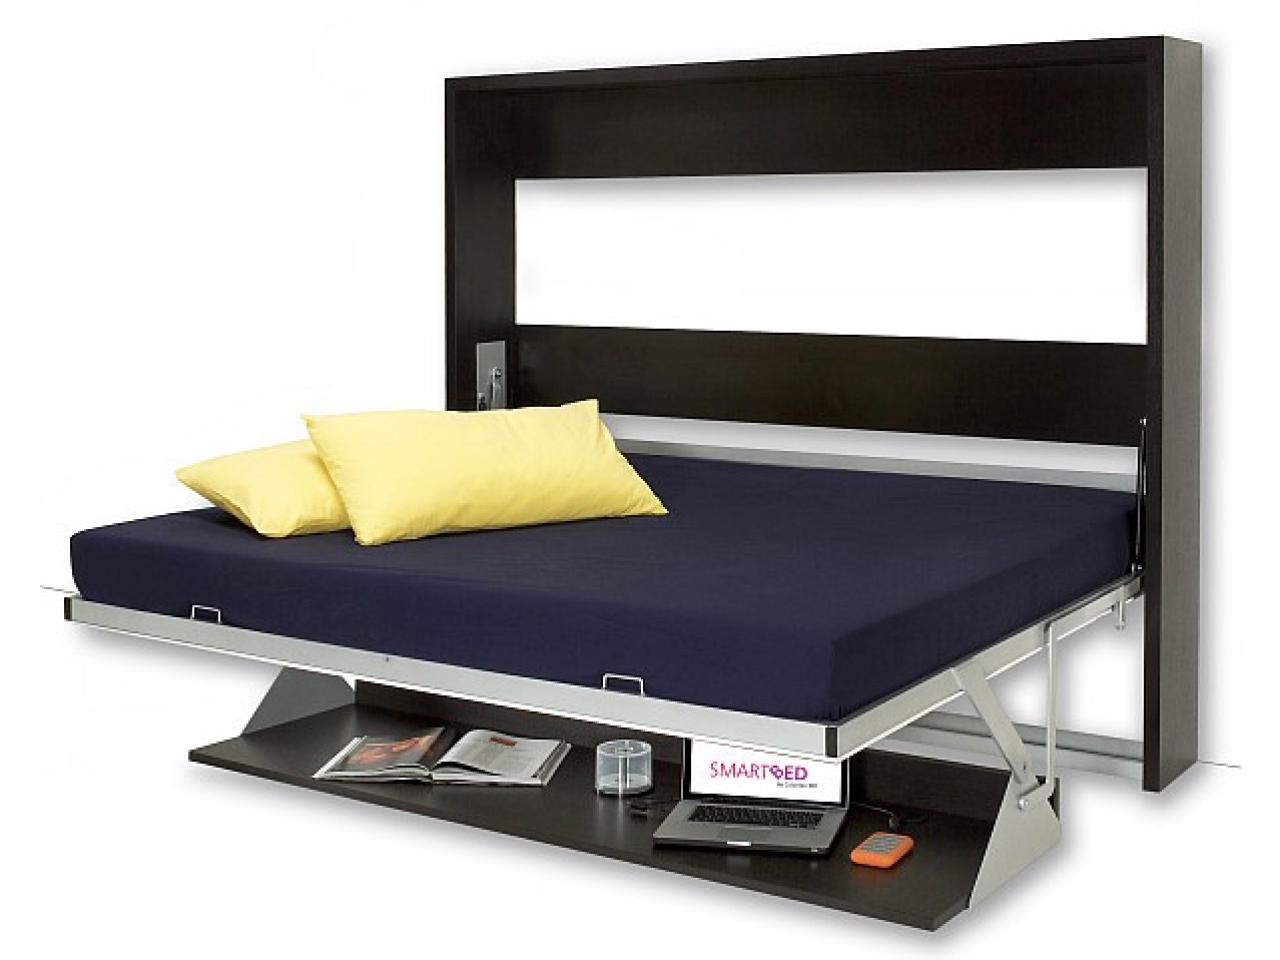 Guest bed solutions ideas homesfeed - Guest bed solutions small spaces minimalist ...